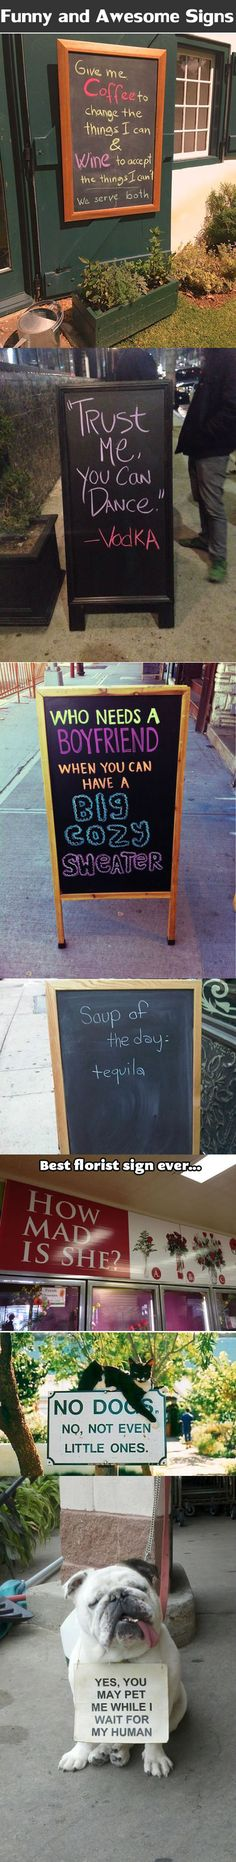 Funny and awesome signs.